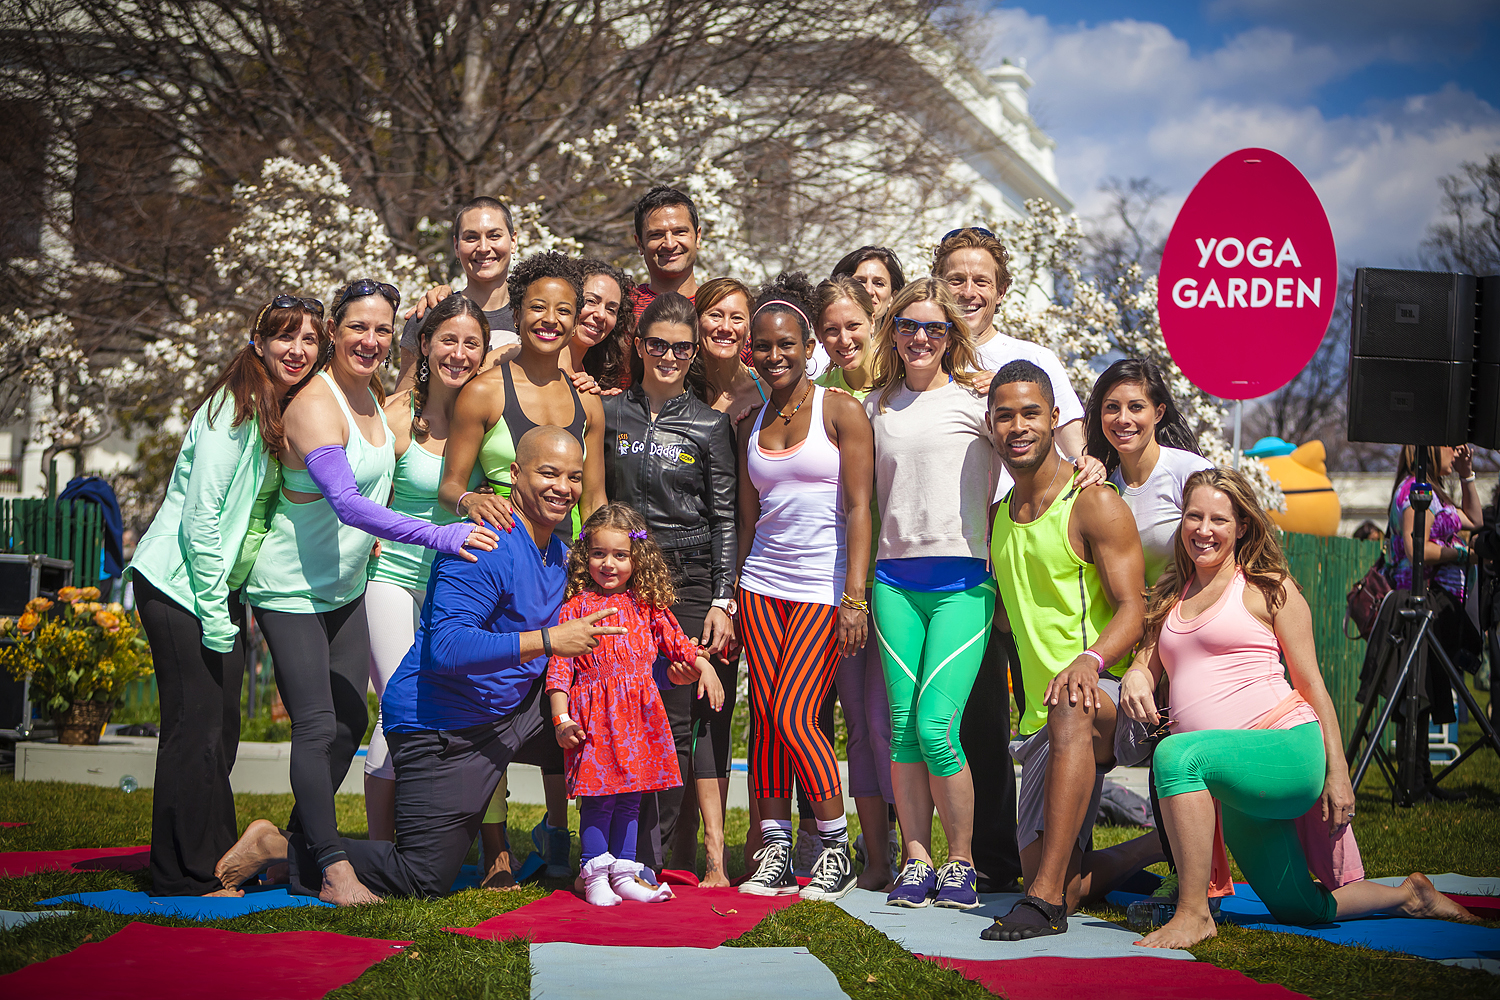 Alison Adams from Homegrown Power Yoga is the best yoga teacher in Washington, DC